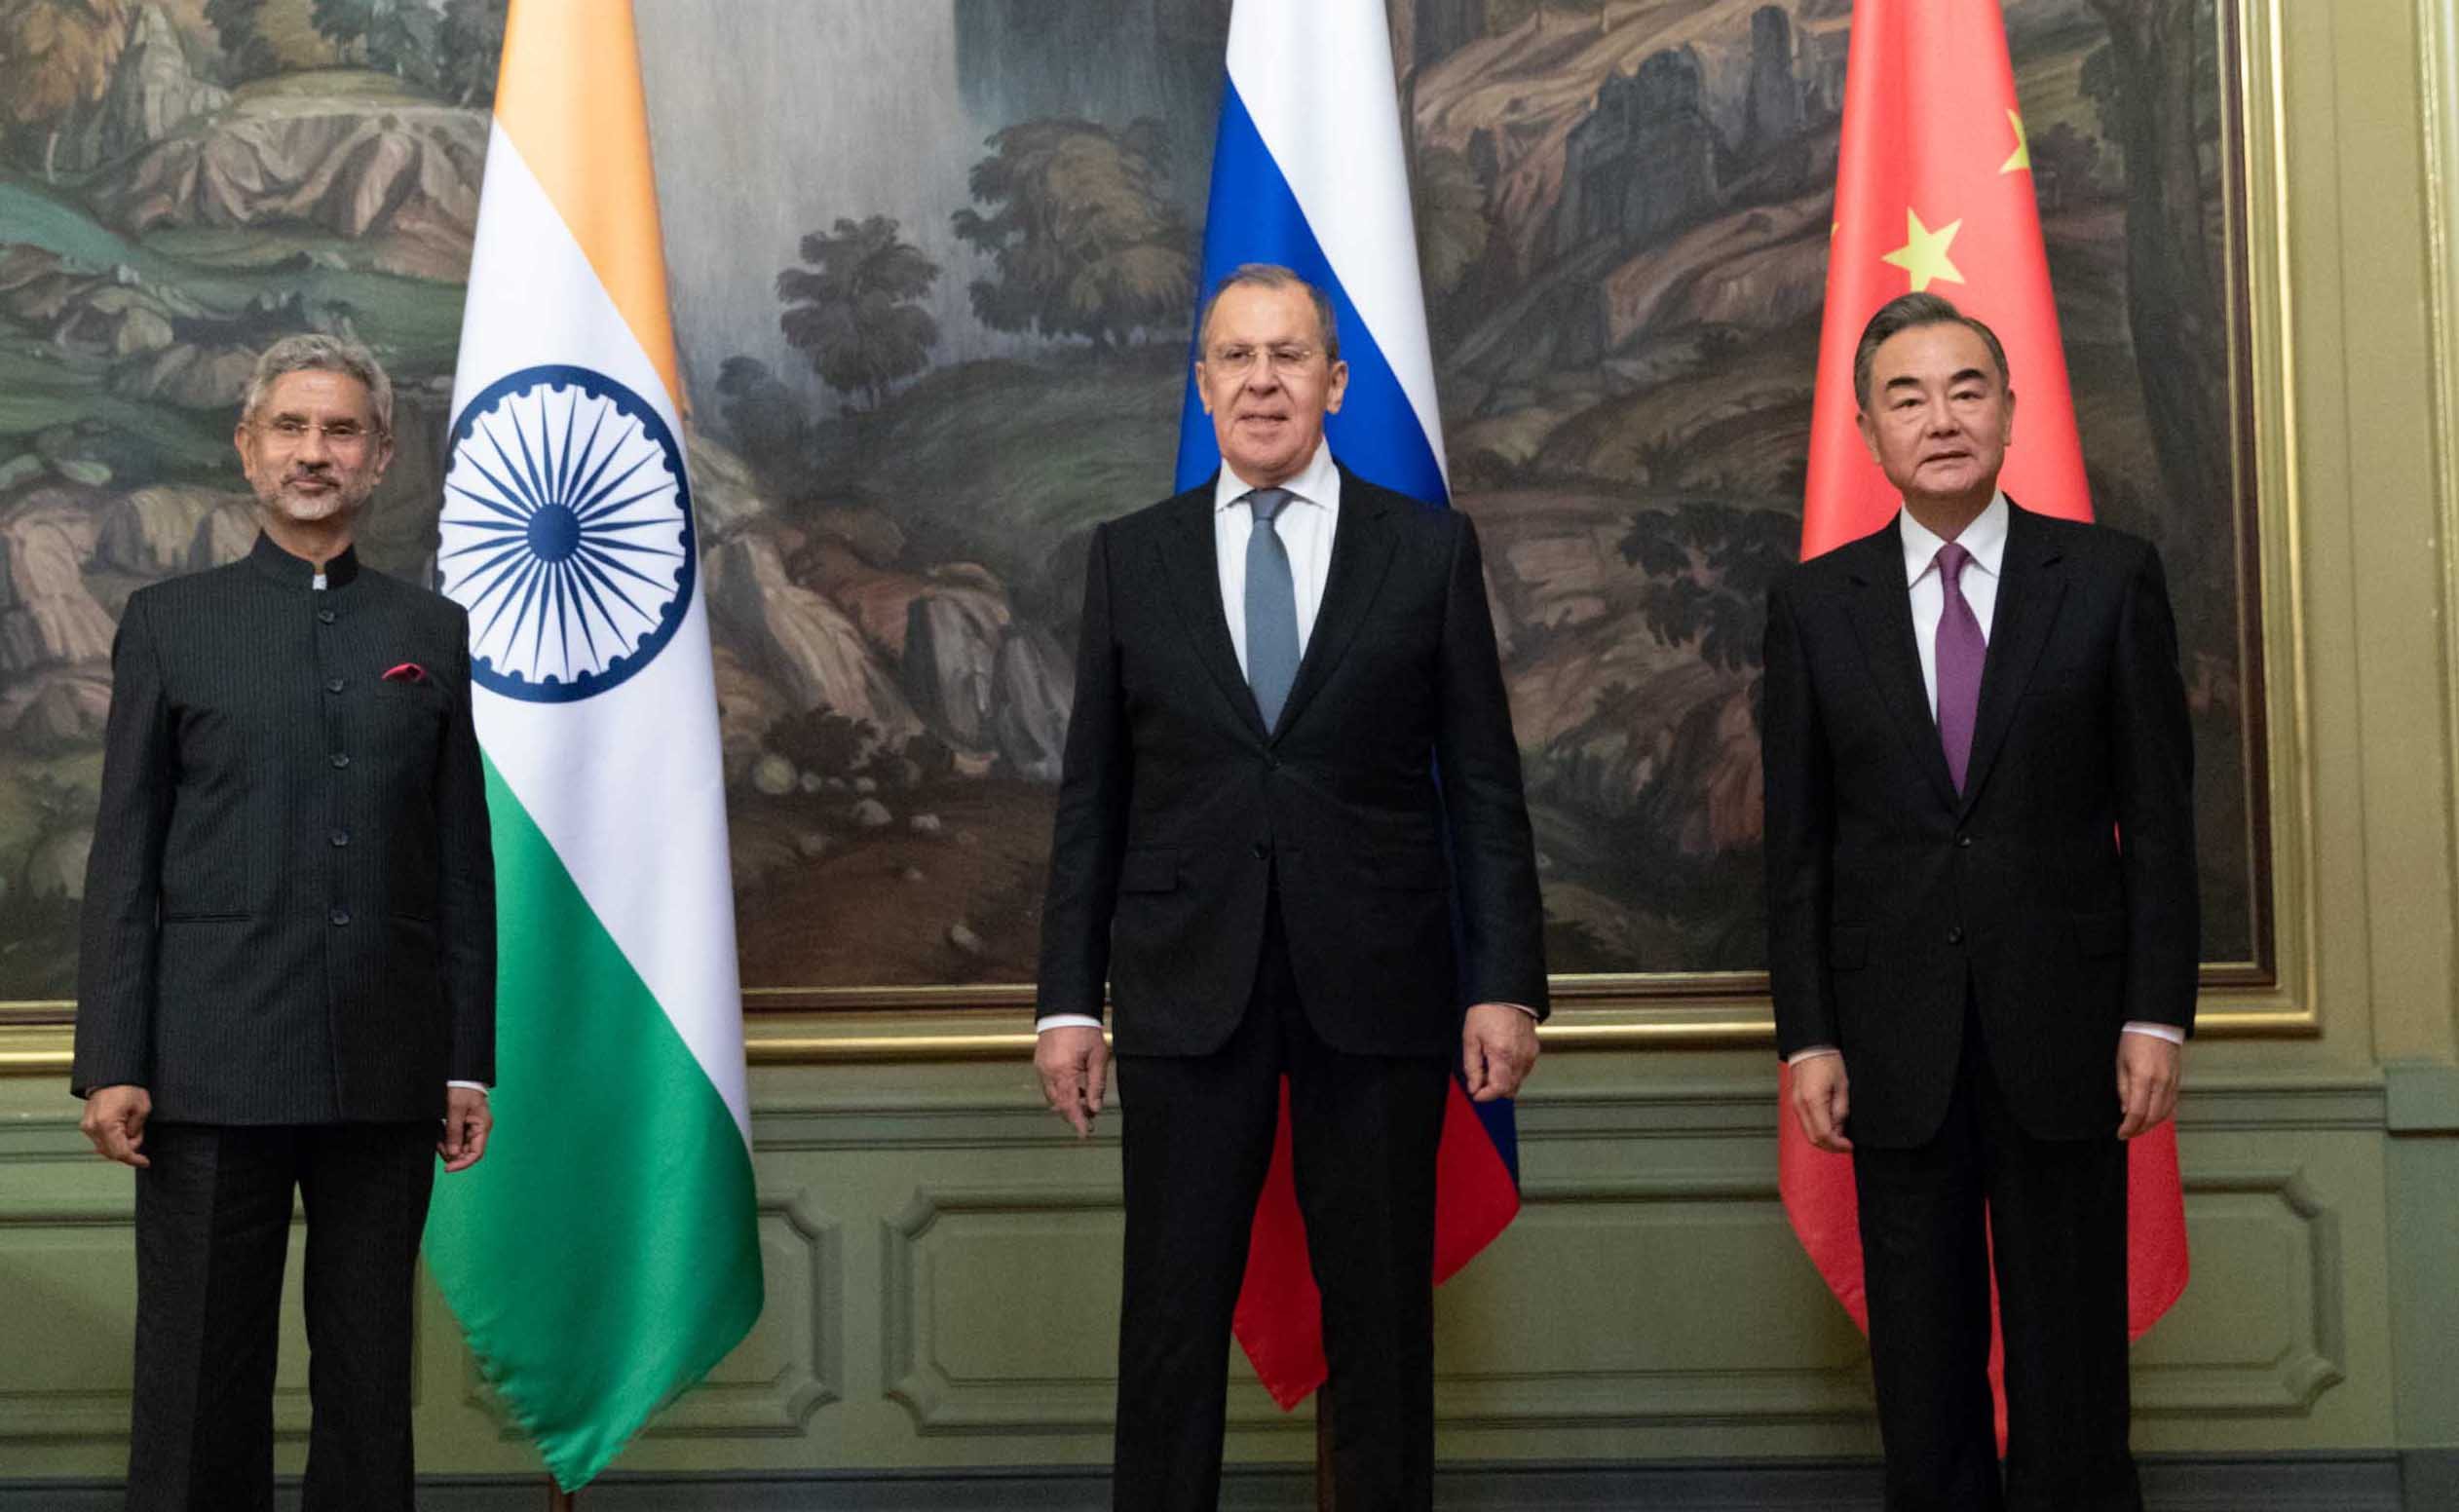 Chinese State Councilor and Foreign Minister Wang Yi (R) meeting with Russian Foreign Minister Sergei Lavrov (C) and Indian External Affairs Minister Subrahmanyam Jaishankar in Moscow, Russia. (UNI)